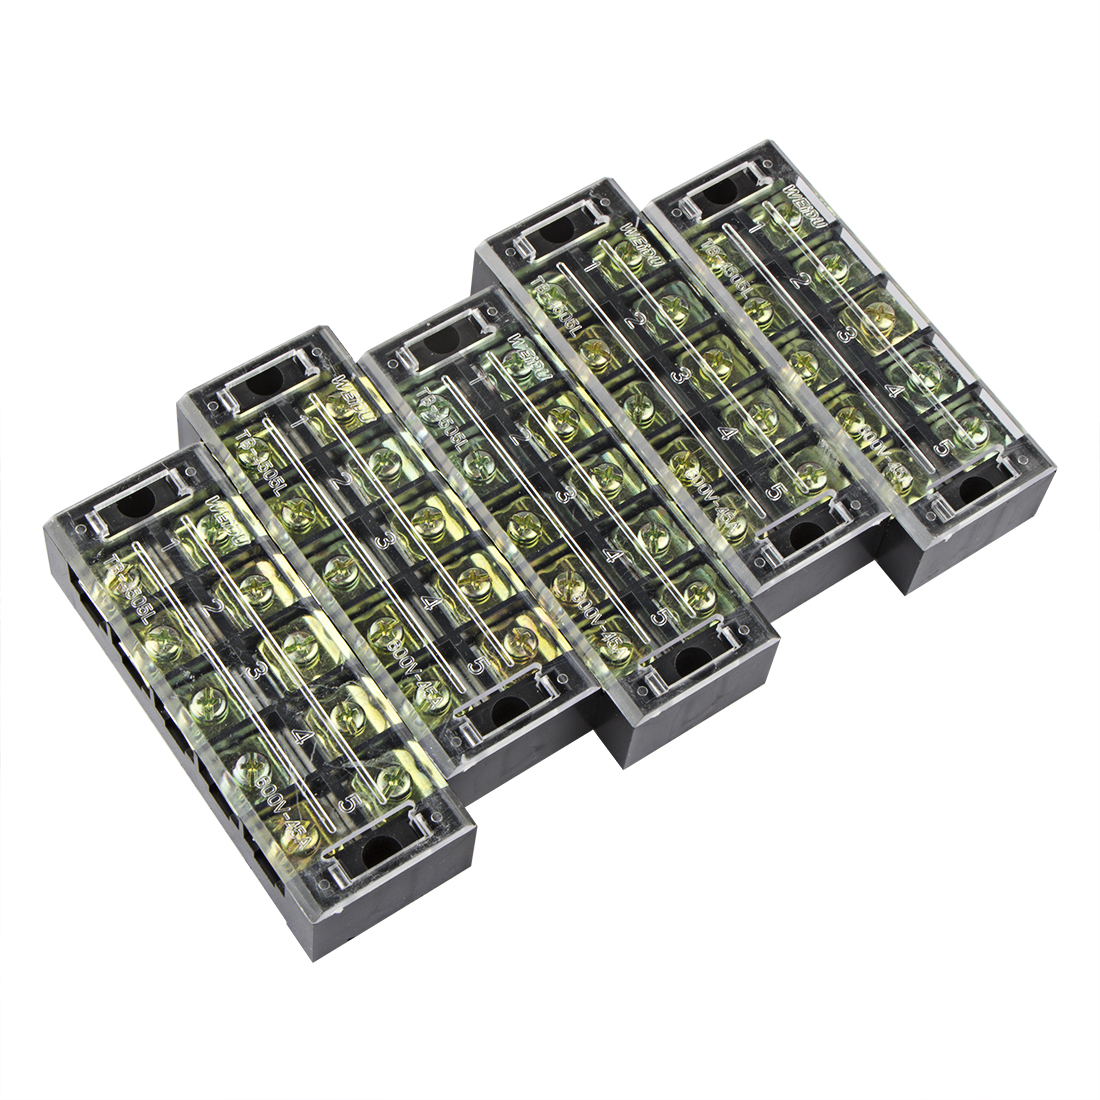 5 Pcs 5 Positions Dual Rows 600V 45A Wire Barrier Block Terminal Strip TB-4505